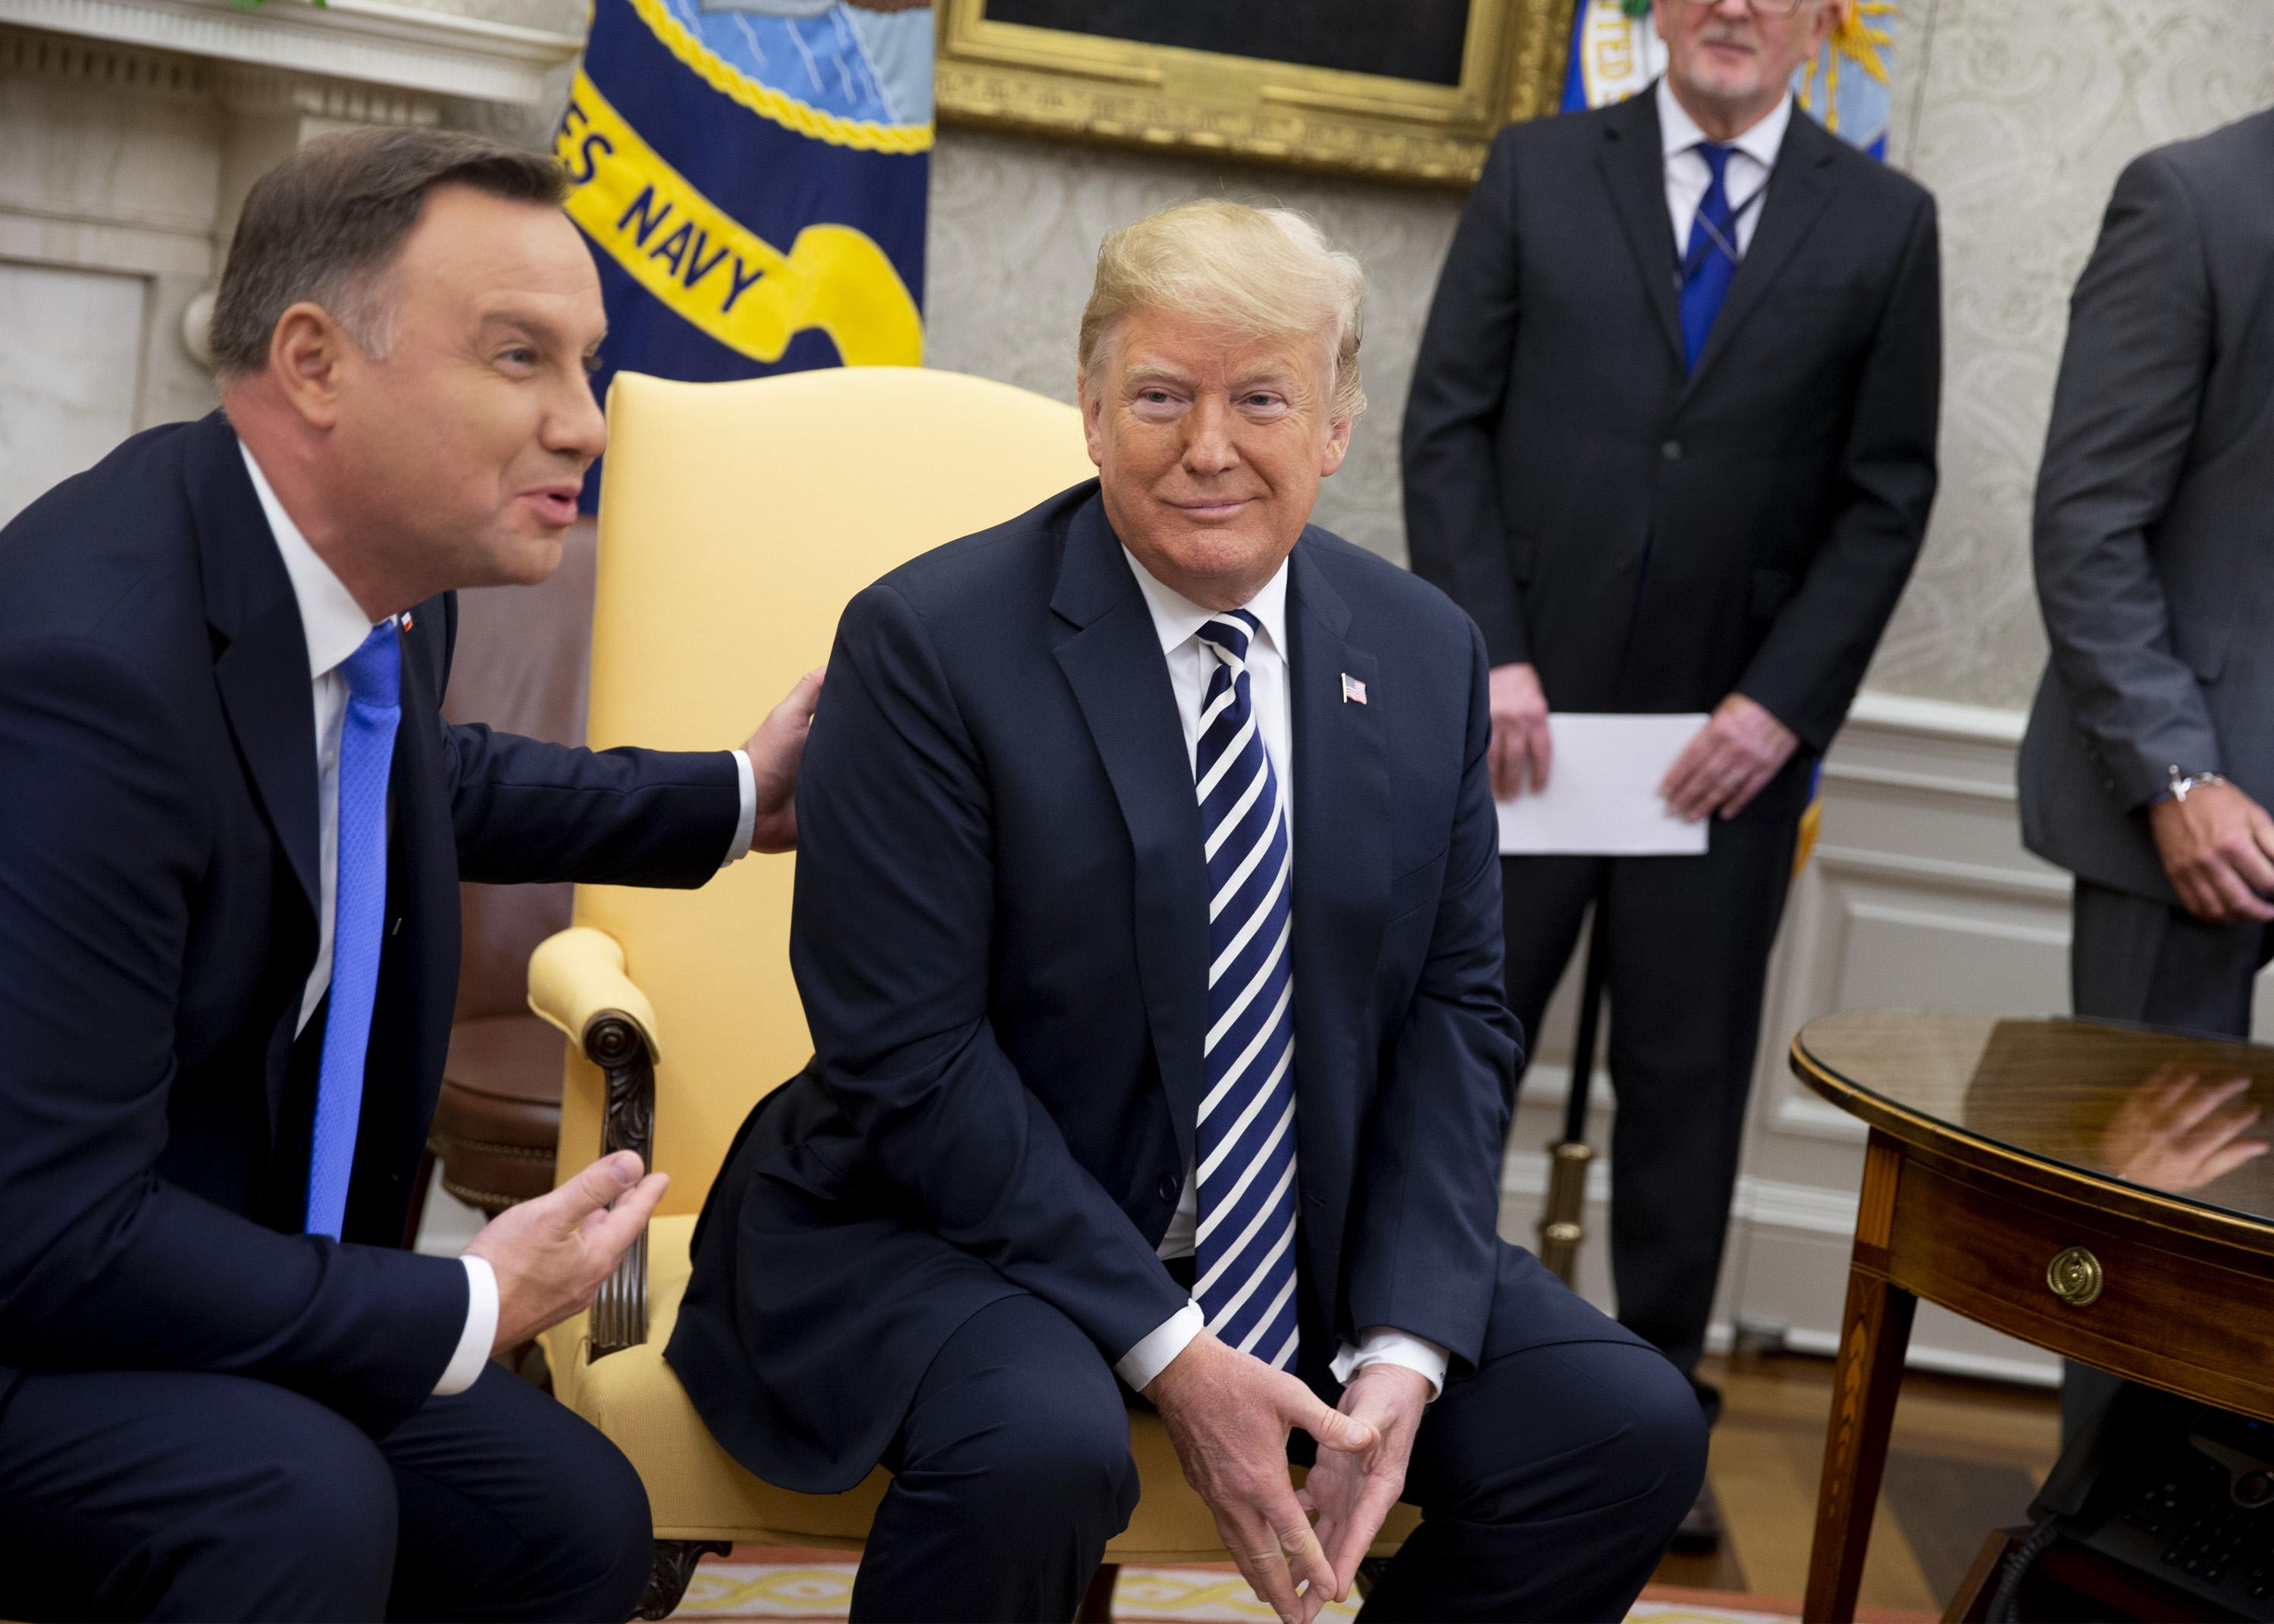 U.S. President Donald Trump and President of Poland Andrzej Duda speak with the media at the oval office in the White House on September 18, 2018. in Washington, DC.